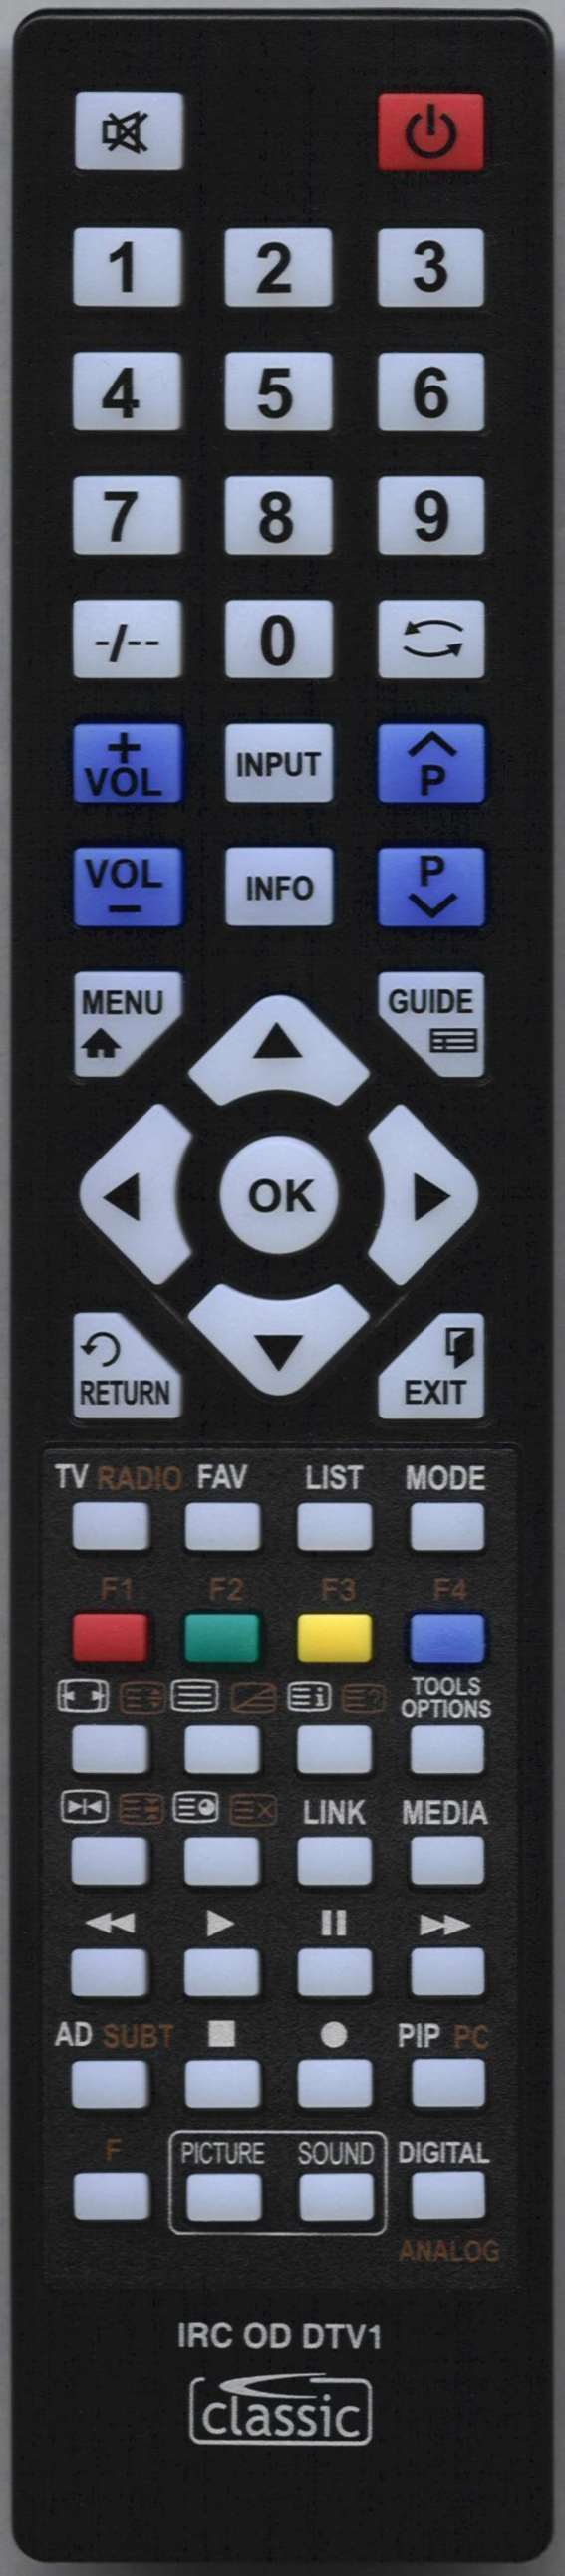 ORION TV-37094A Remote Control Alternative